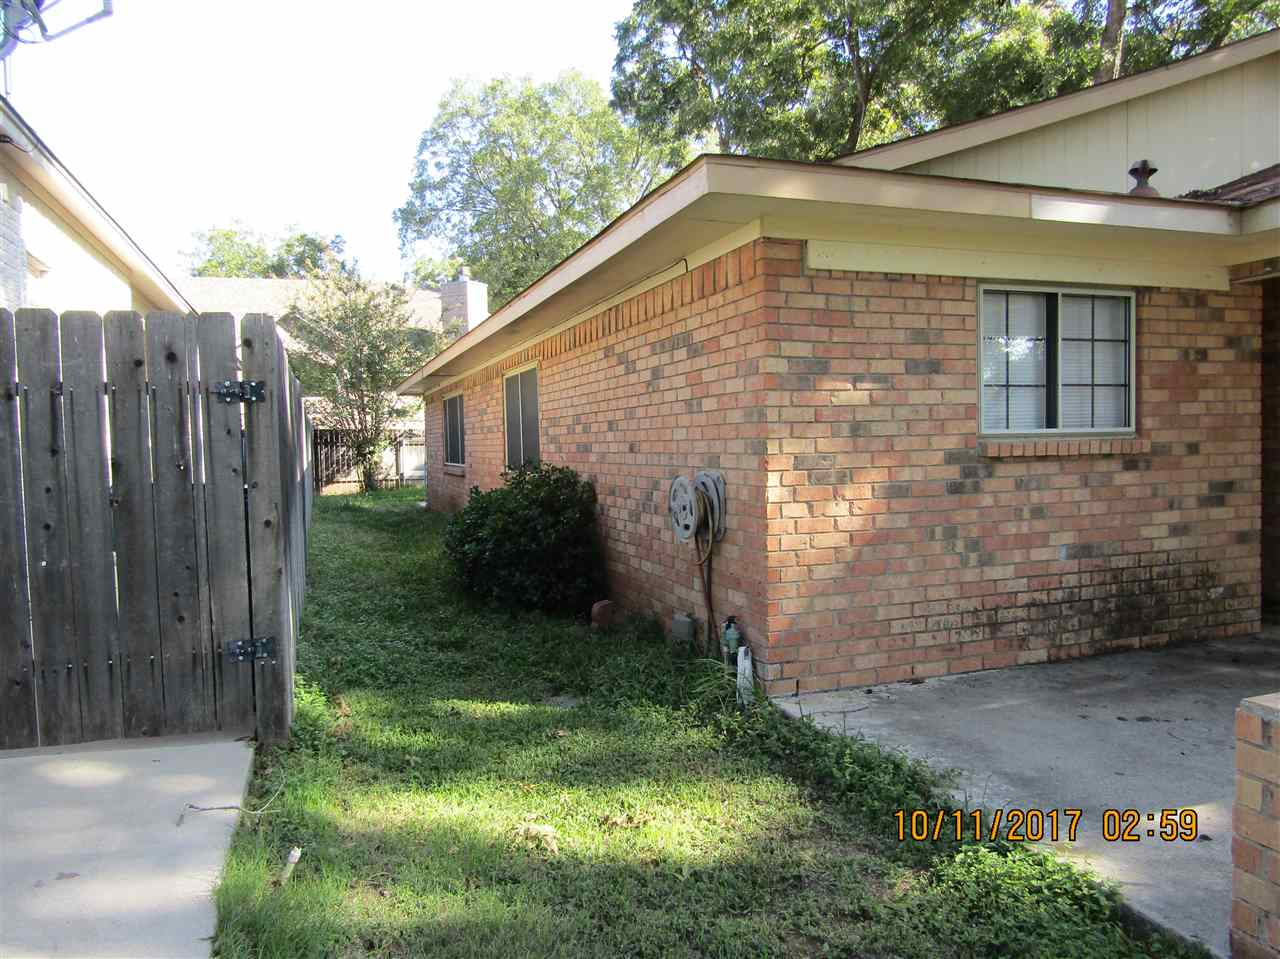 Additional photo for property listing at 283 Turkey Run 283 Turkey Run Meadowlakes, Texas 78654 United States